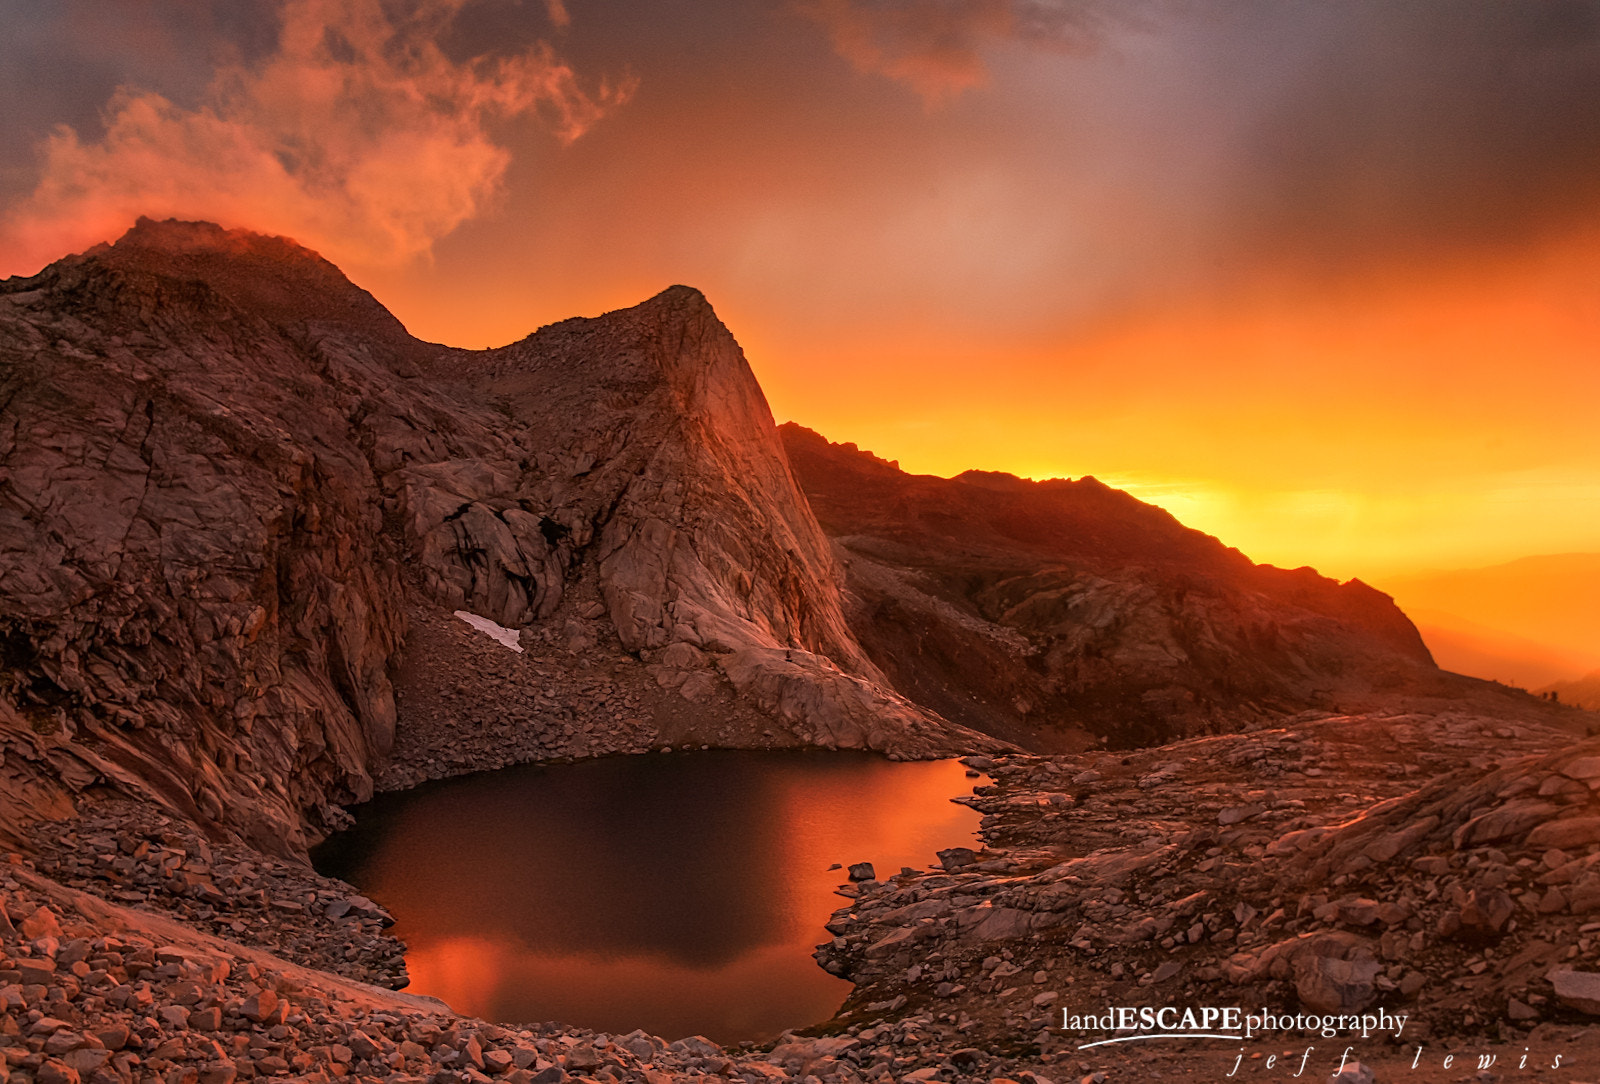 Photograph Muir's Campfire by Jeff Lewis on 500px